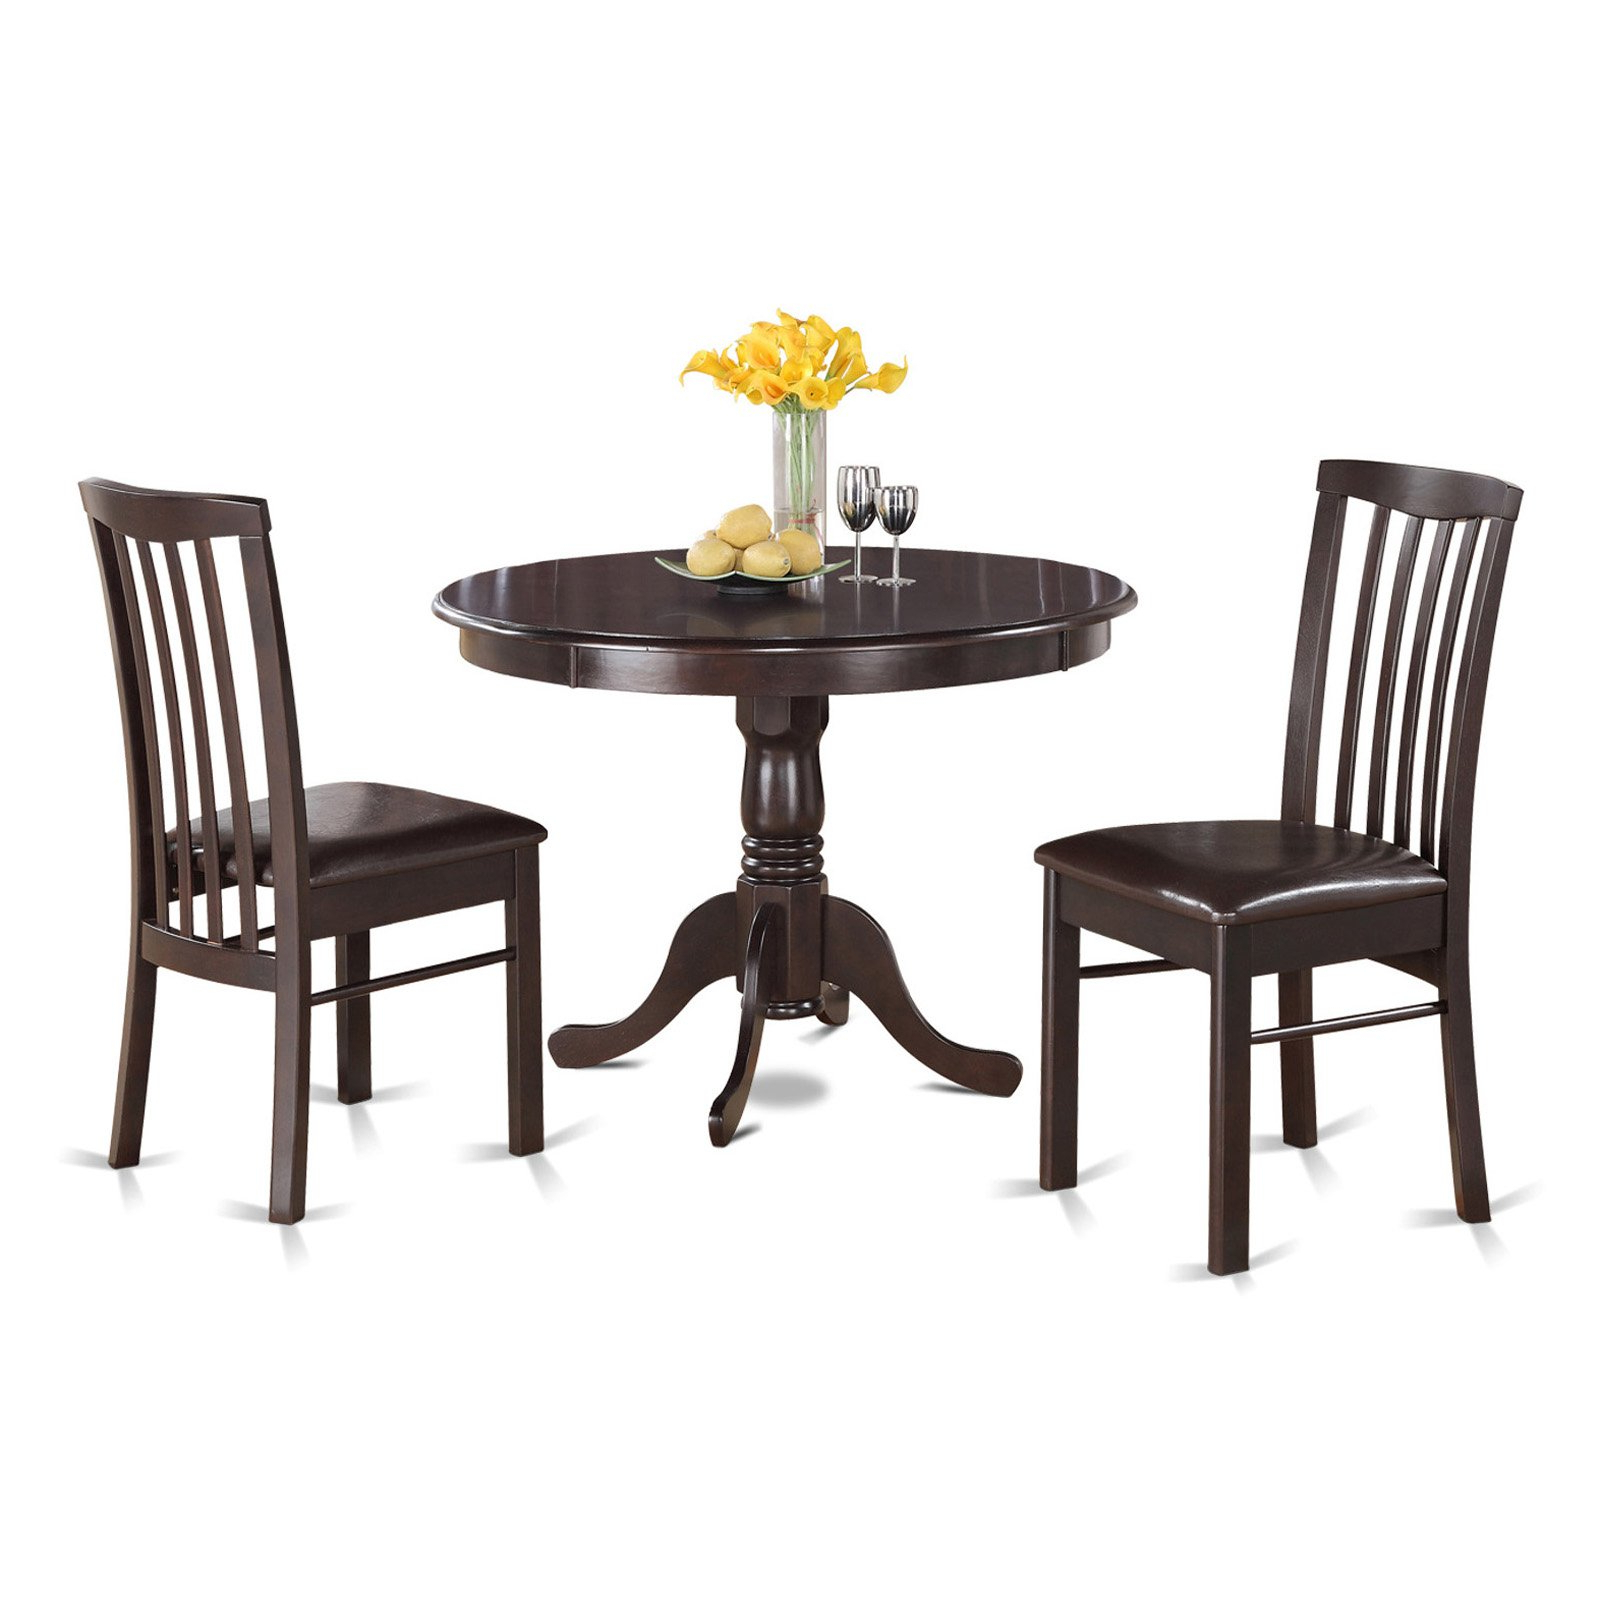 Charcoal Transitional 6 Seating Rectangular Dining Tables Pertaining To Most Recently Released East West Furniture Hartland 3 Piece Round Pedestal Dining (View 20 of 30)